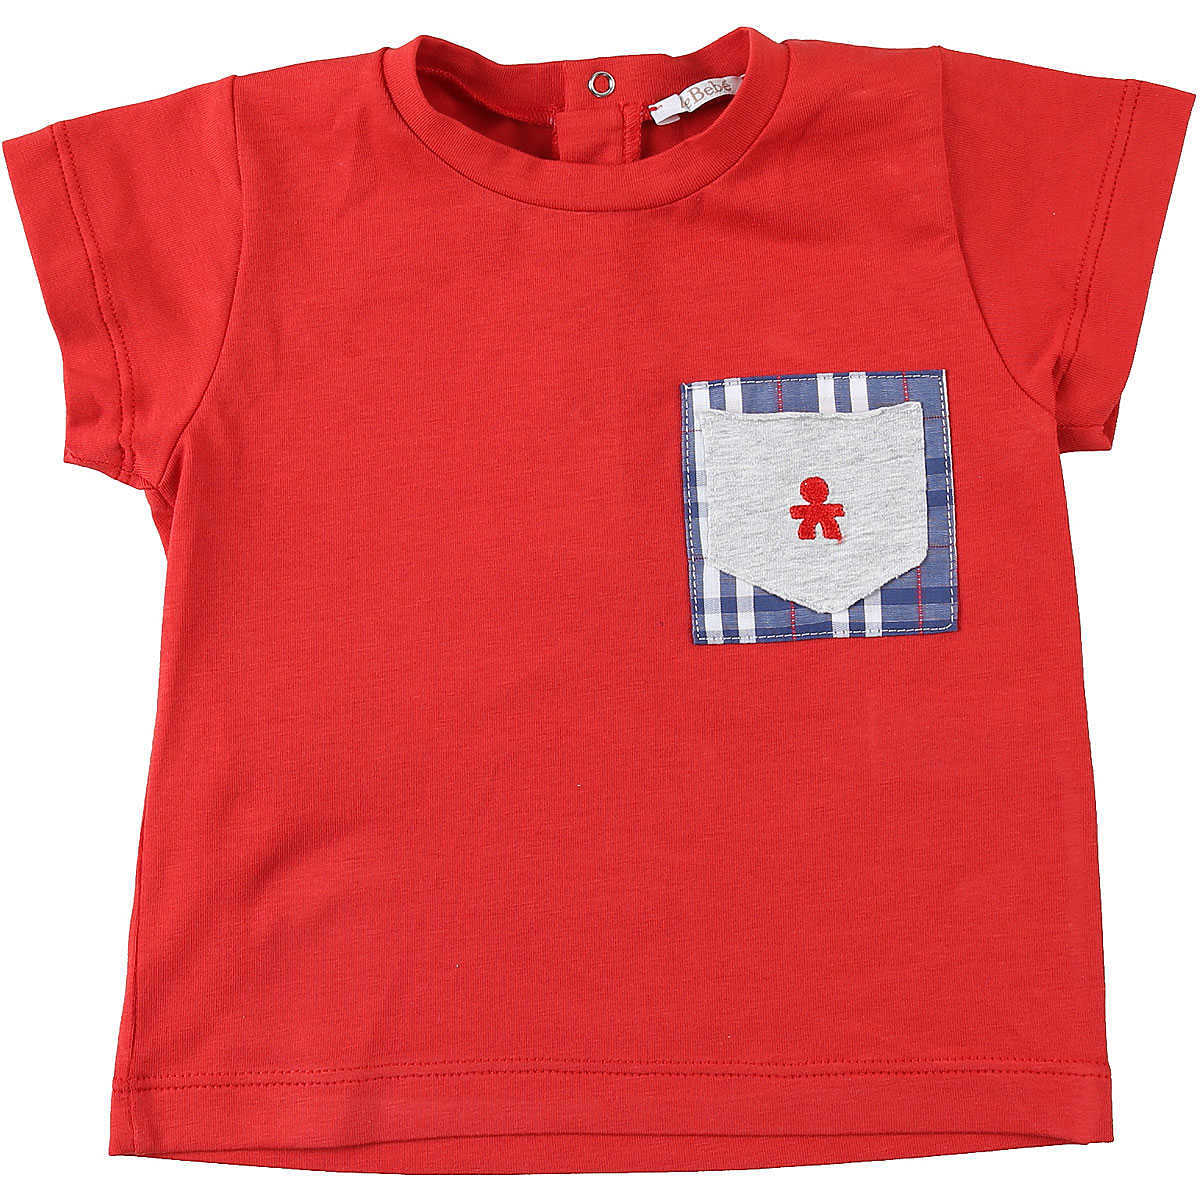 Le Bebe Baby T-Shirt for Boys On Sale Red UK - GOOFASH - Mens T-SHIRTS